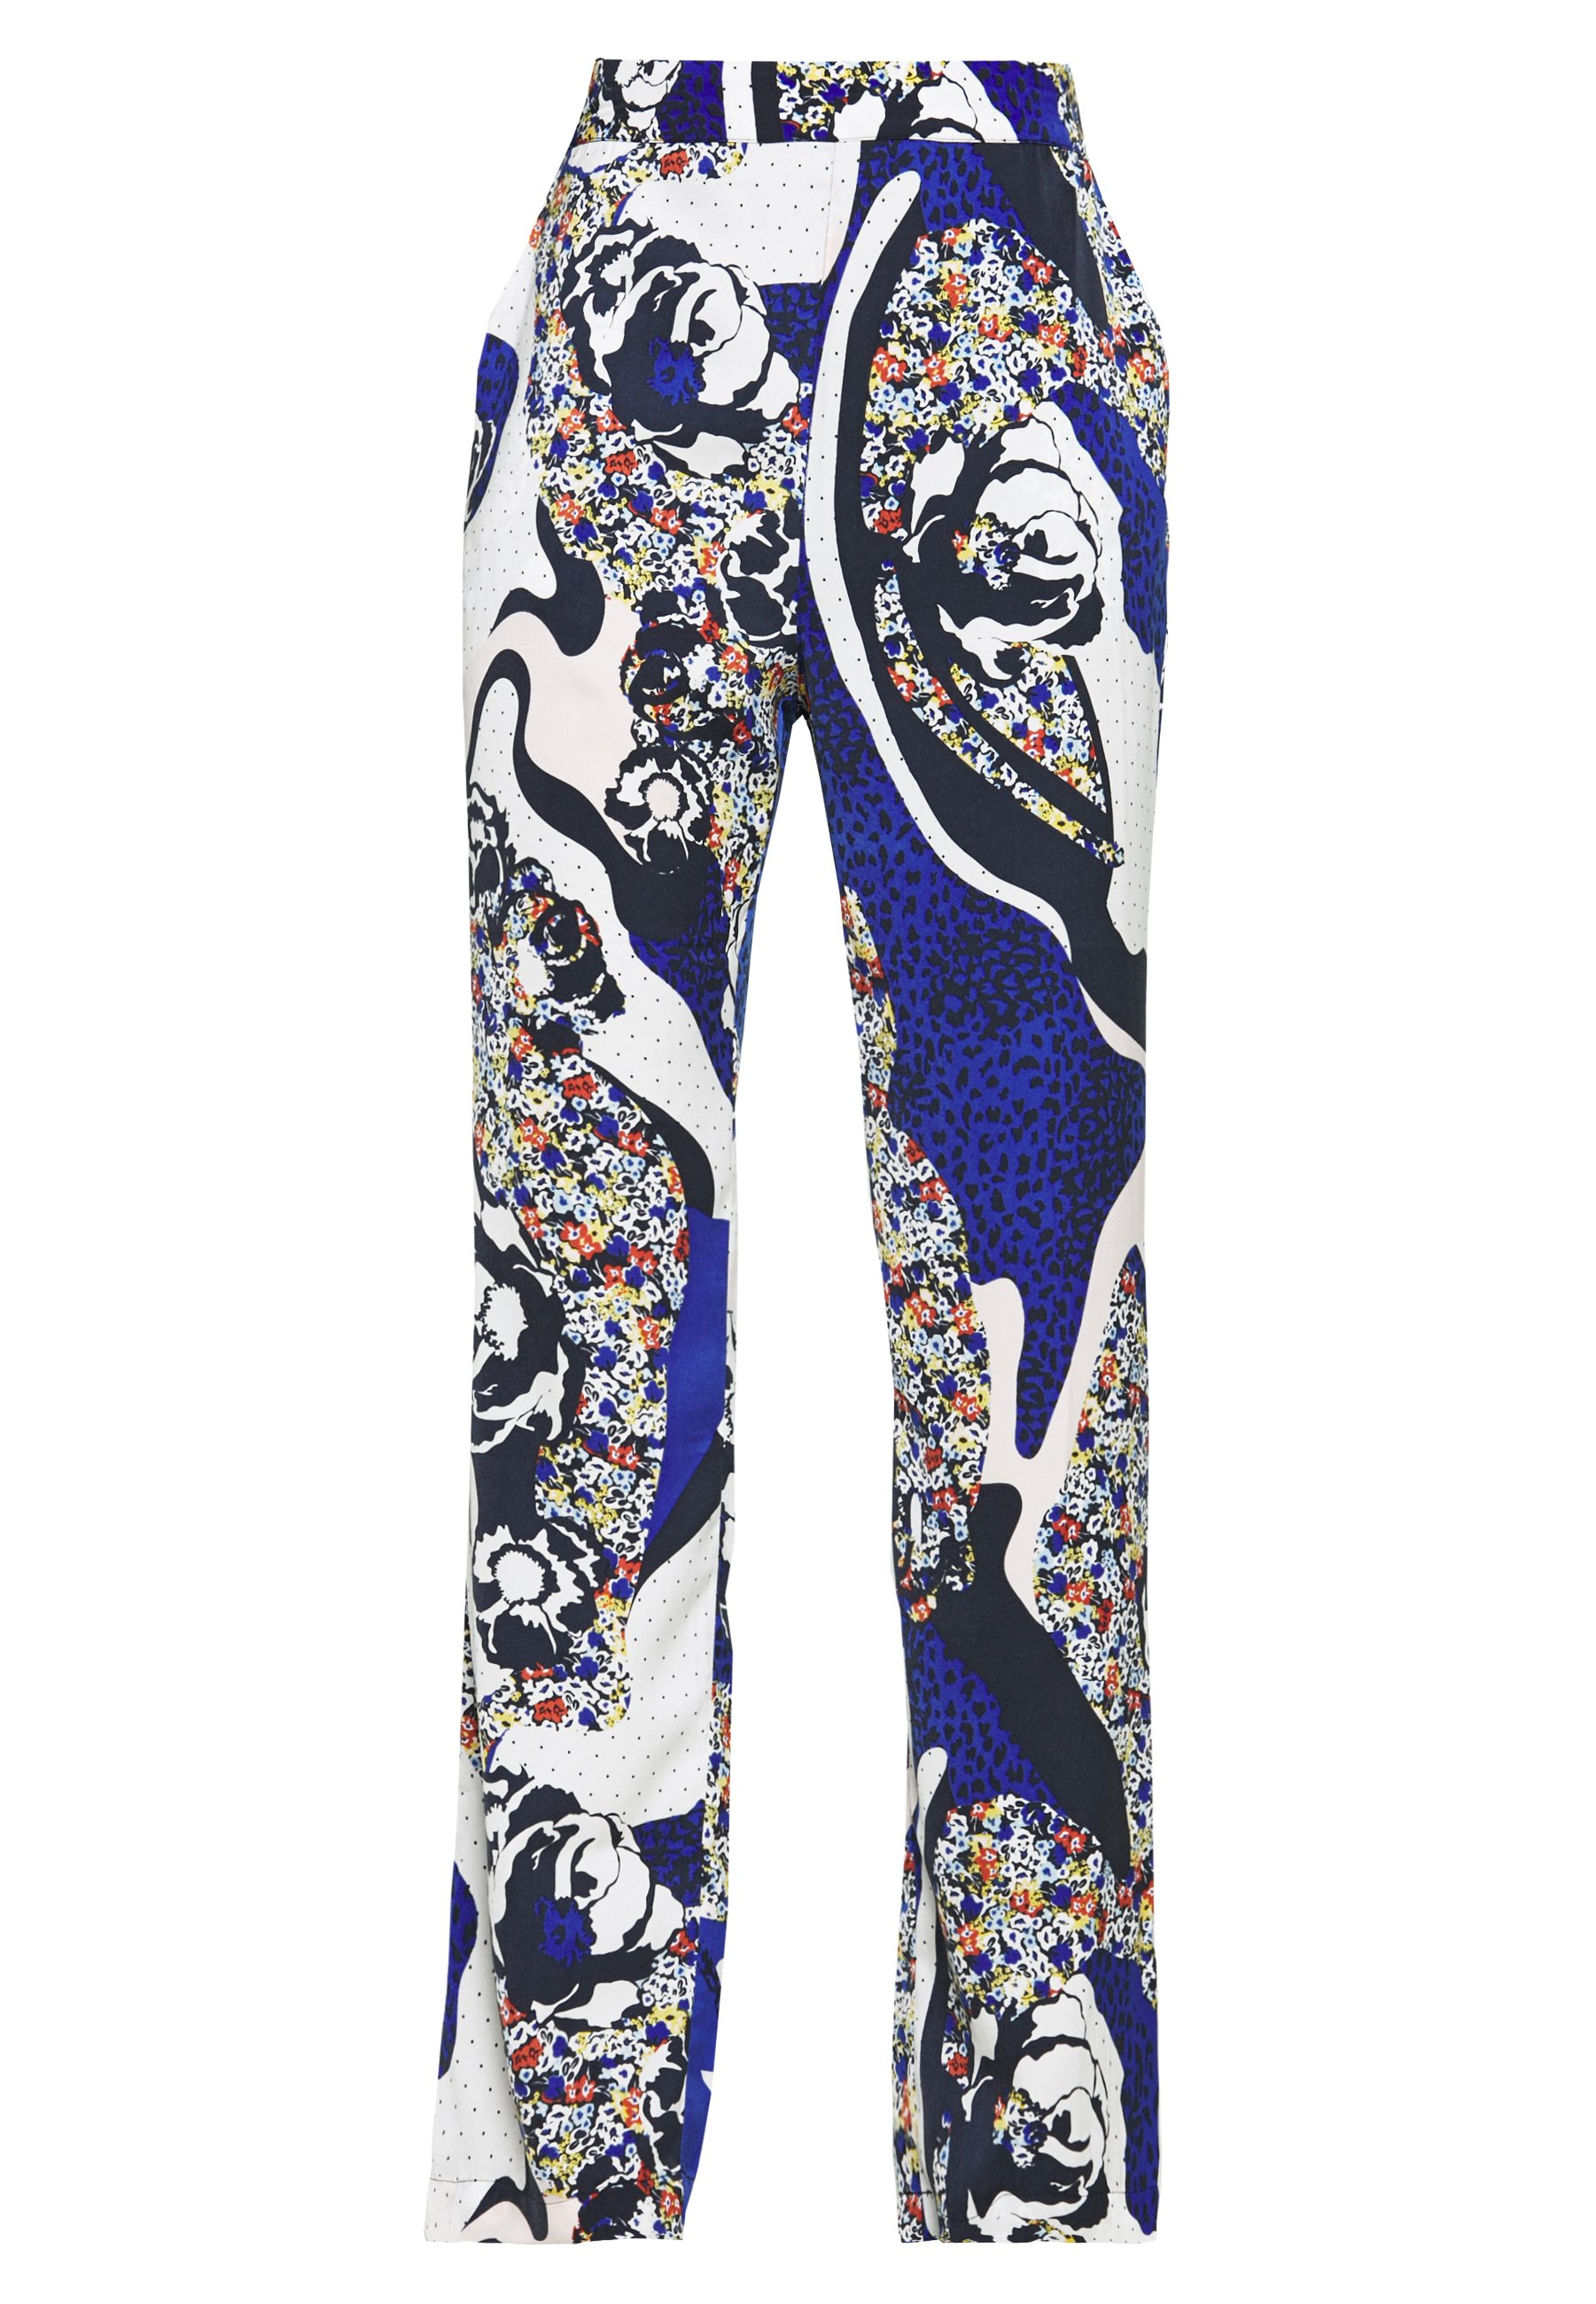 Six Ames Rio - Trousers Collage